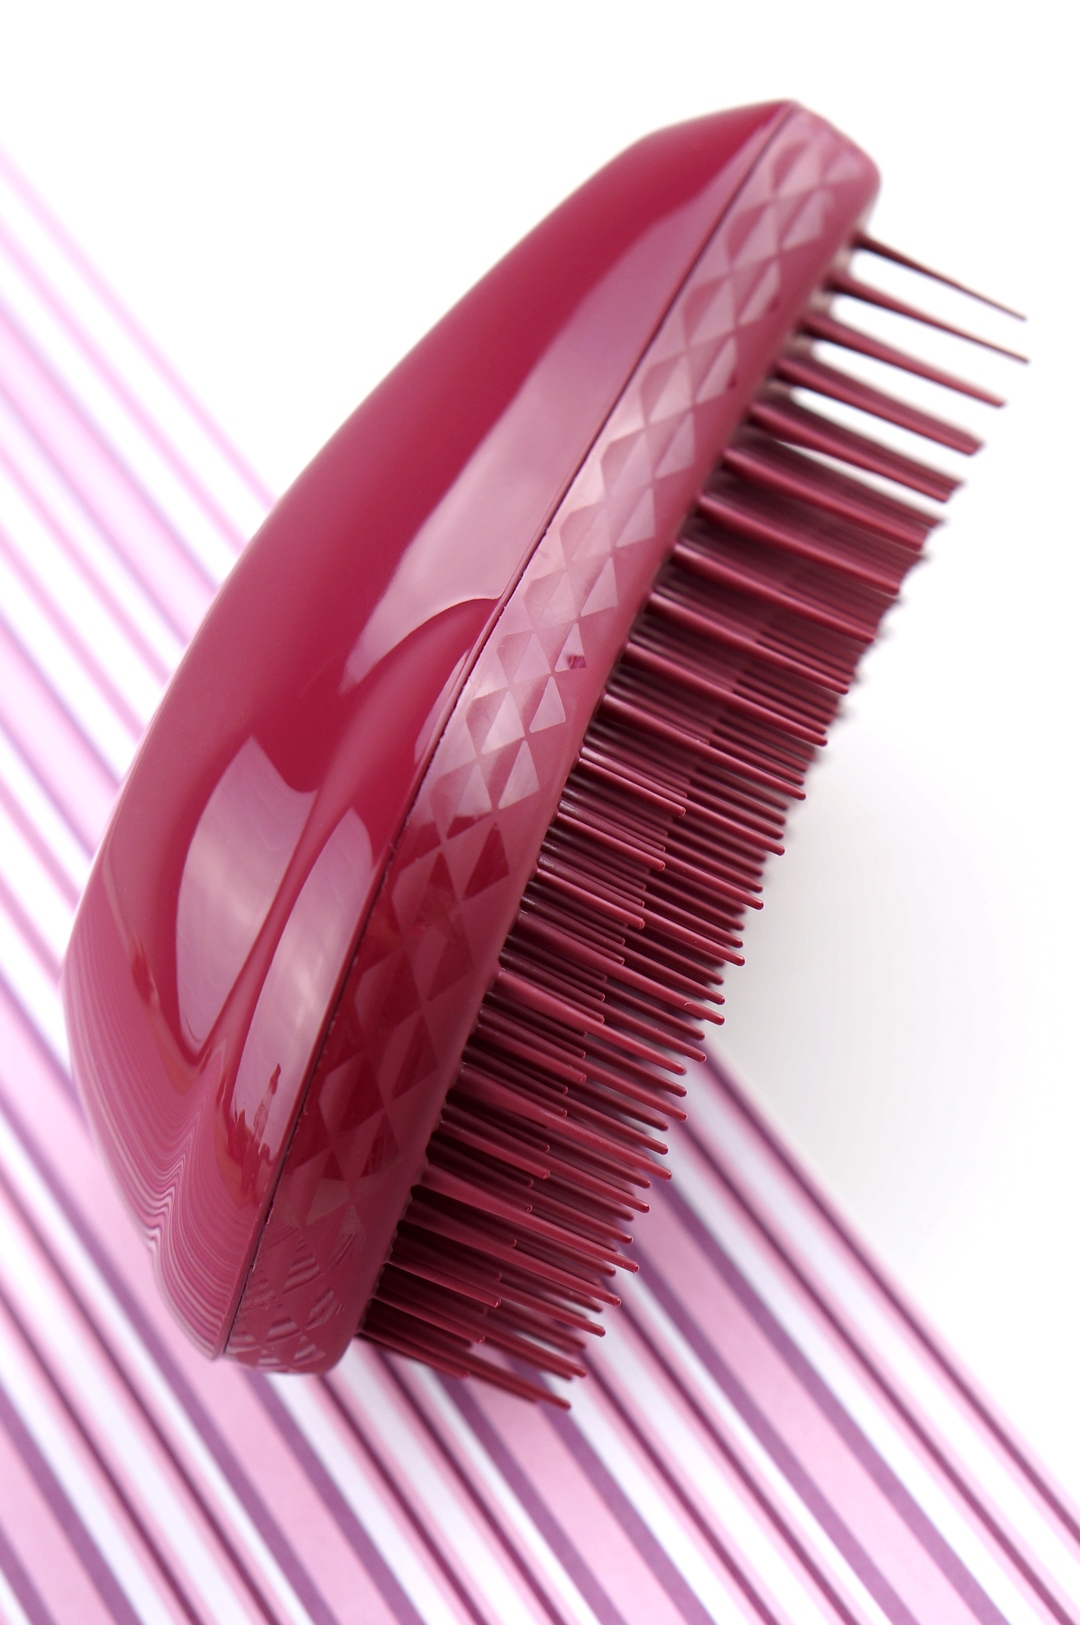 Tange Teezer Thick & Curly hair